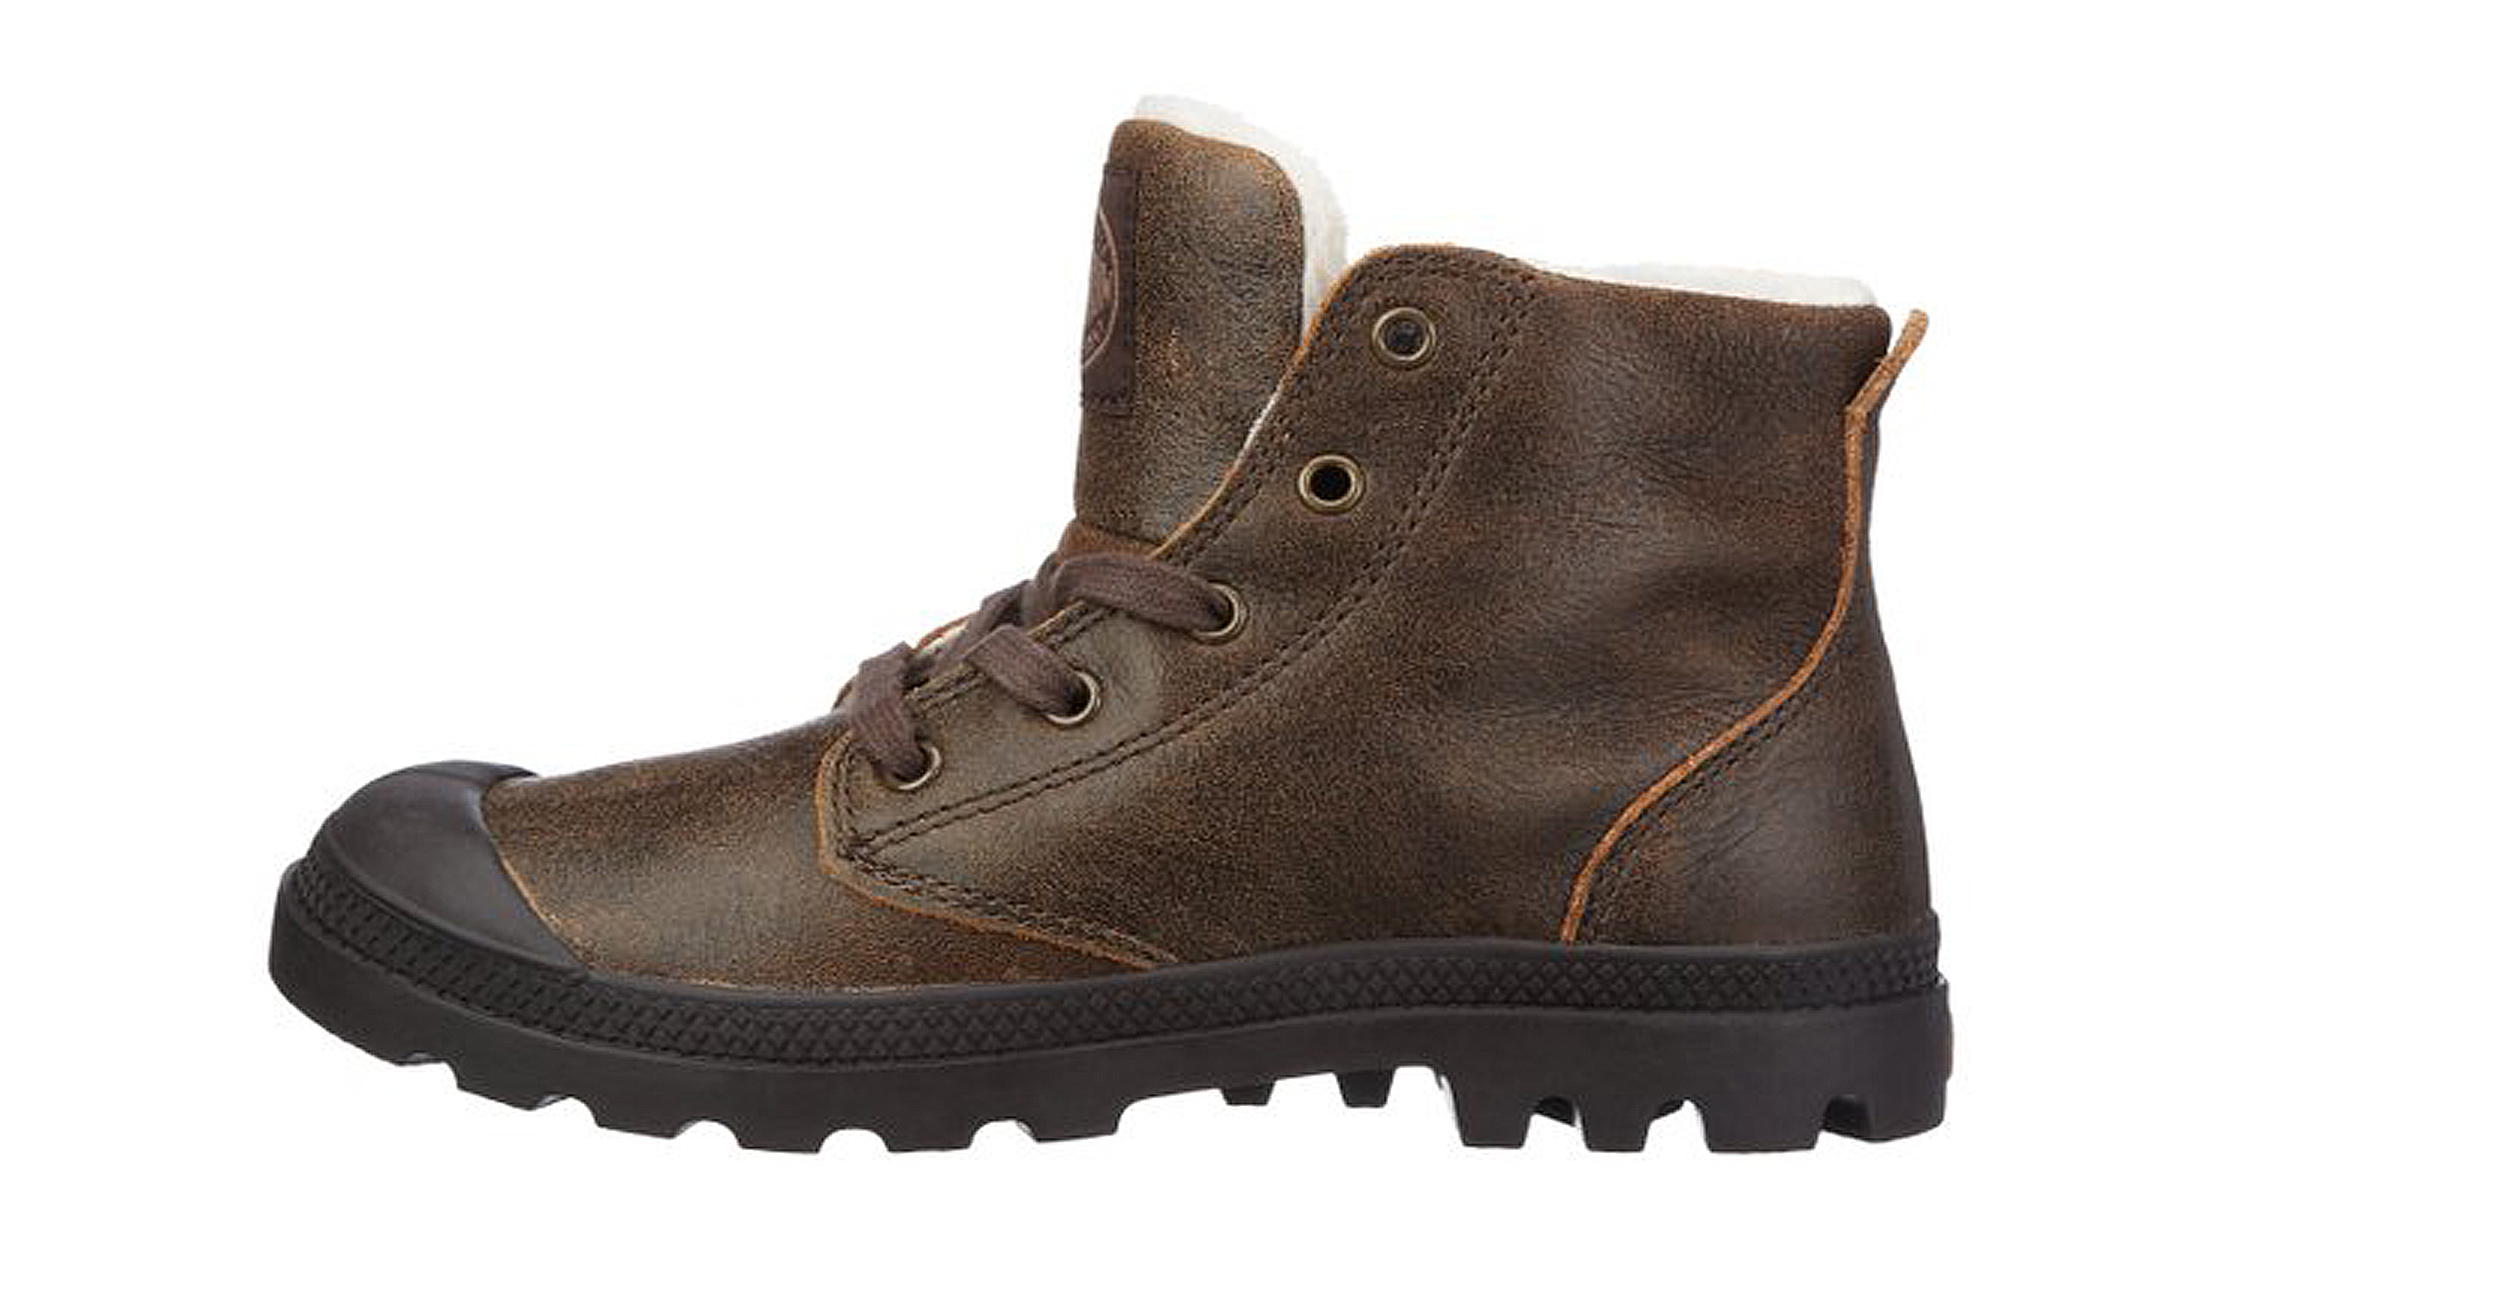 ladies ankle boots palladium-womens-ankle-boots-pampa-hi-leather-s- mzotujy